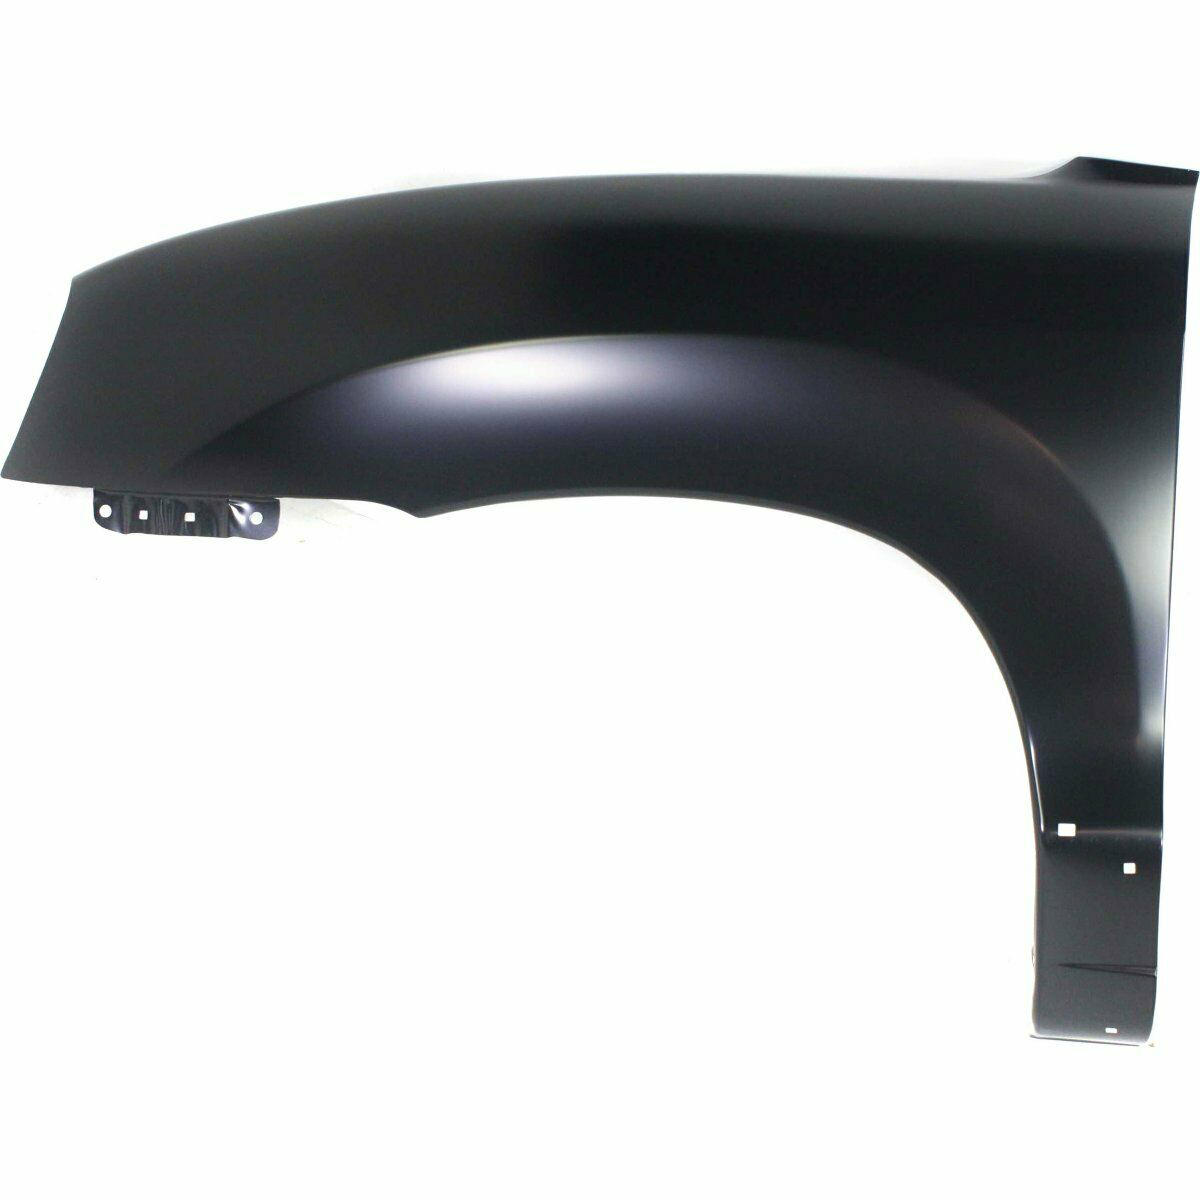 2003-2004 Left Fender for Hyundai Santa Fe w/ Molding Holes Painted to Match